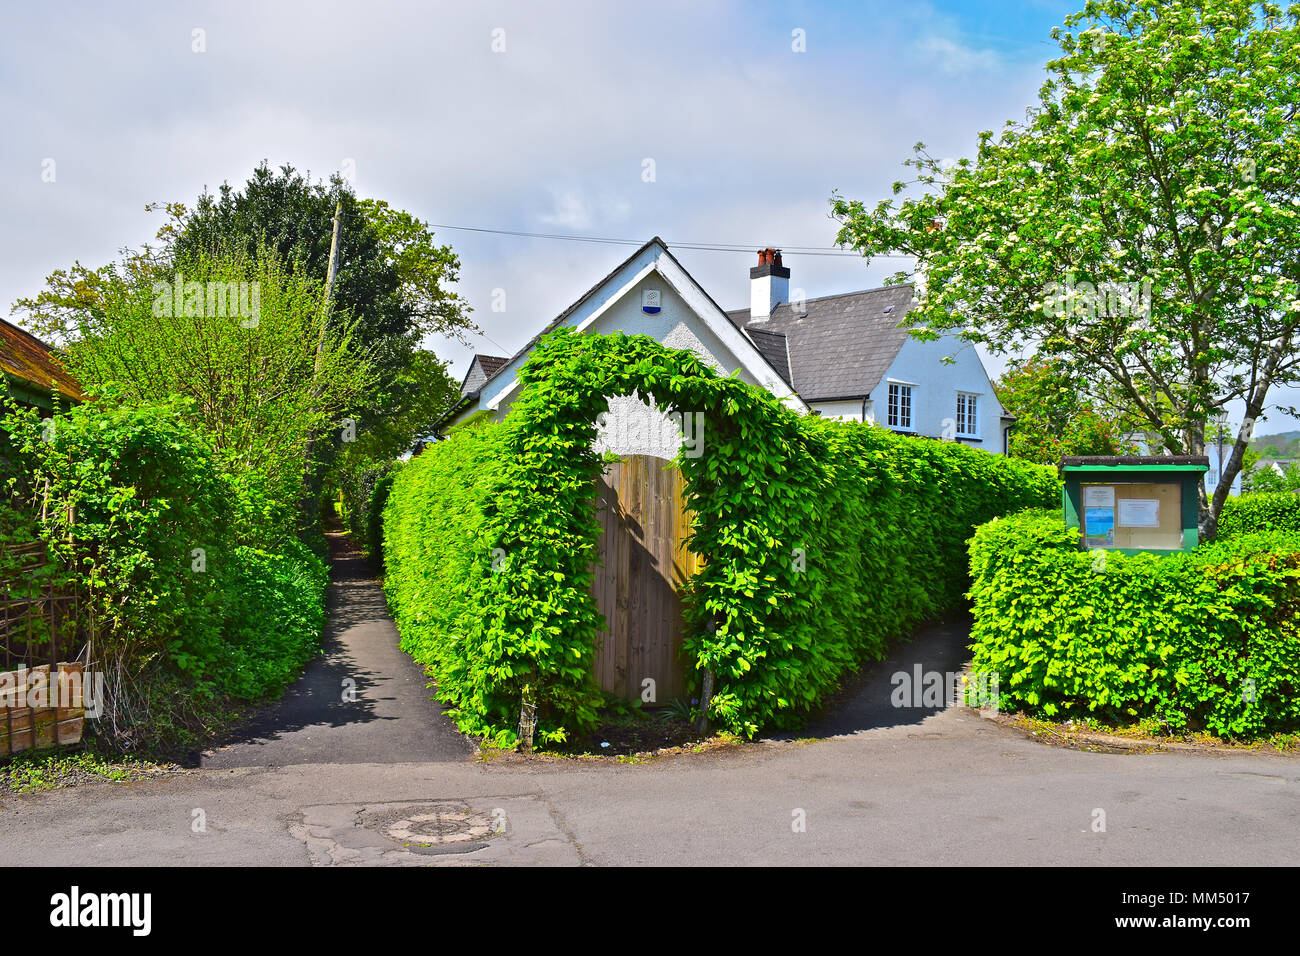 Green hedgerows line footpaths in Rhiwbina Garden Village, erected in the early1900s to enable workers to live 'in the country'-Cardiff,Wales - Stock Image